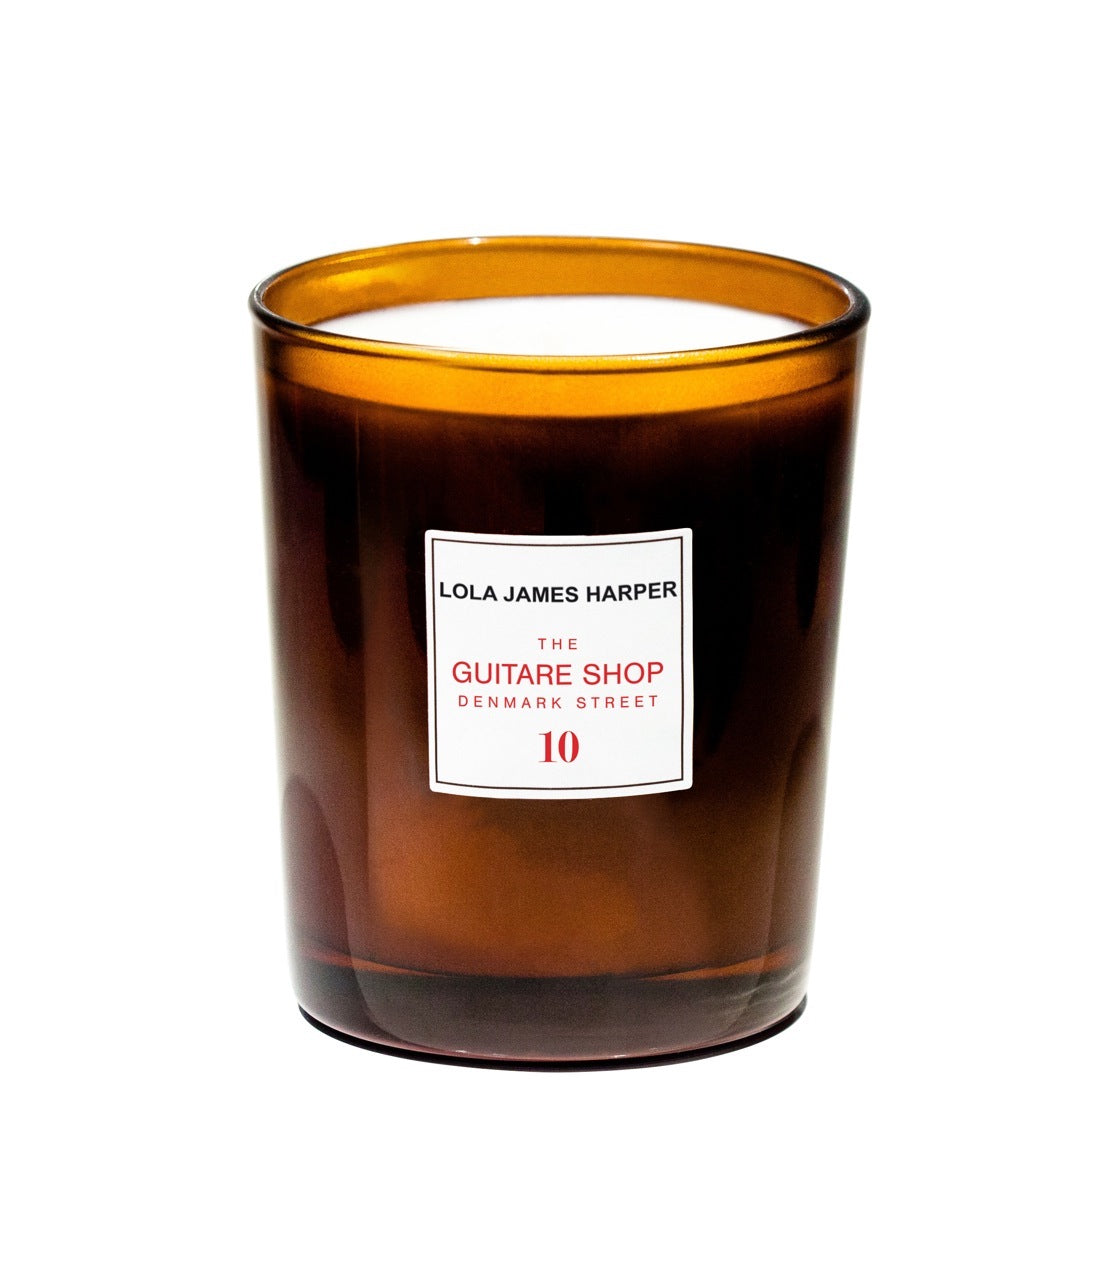 LOLA JAMES HARPER - 10 The Guitare Shop on Denmark Street - 190G CANDLE